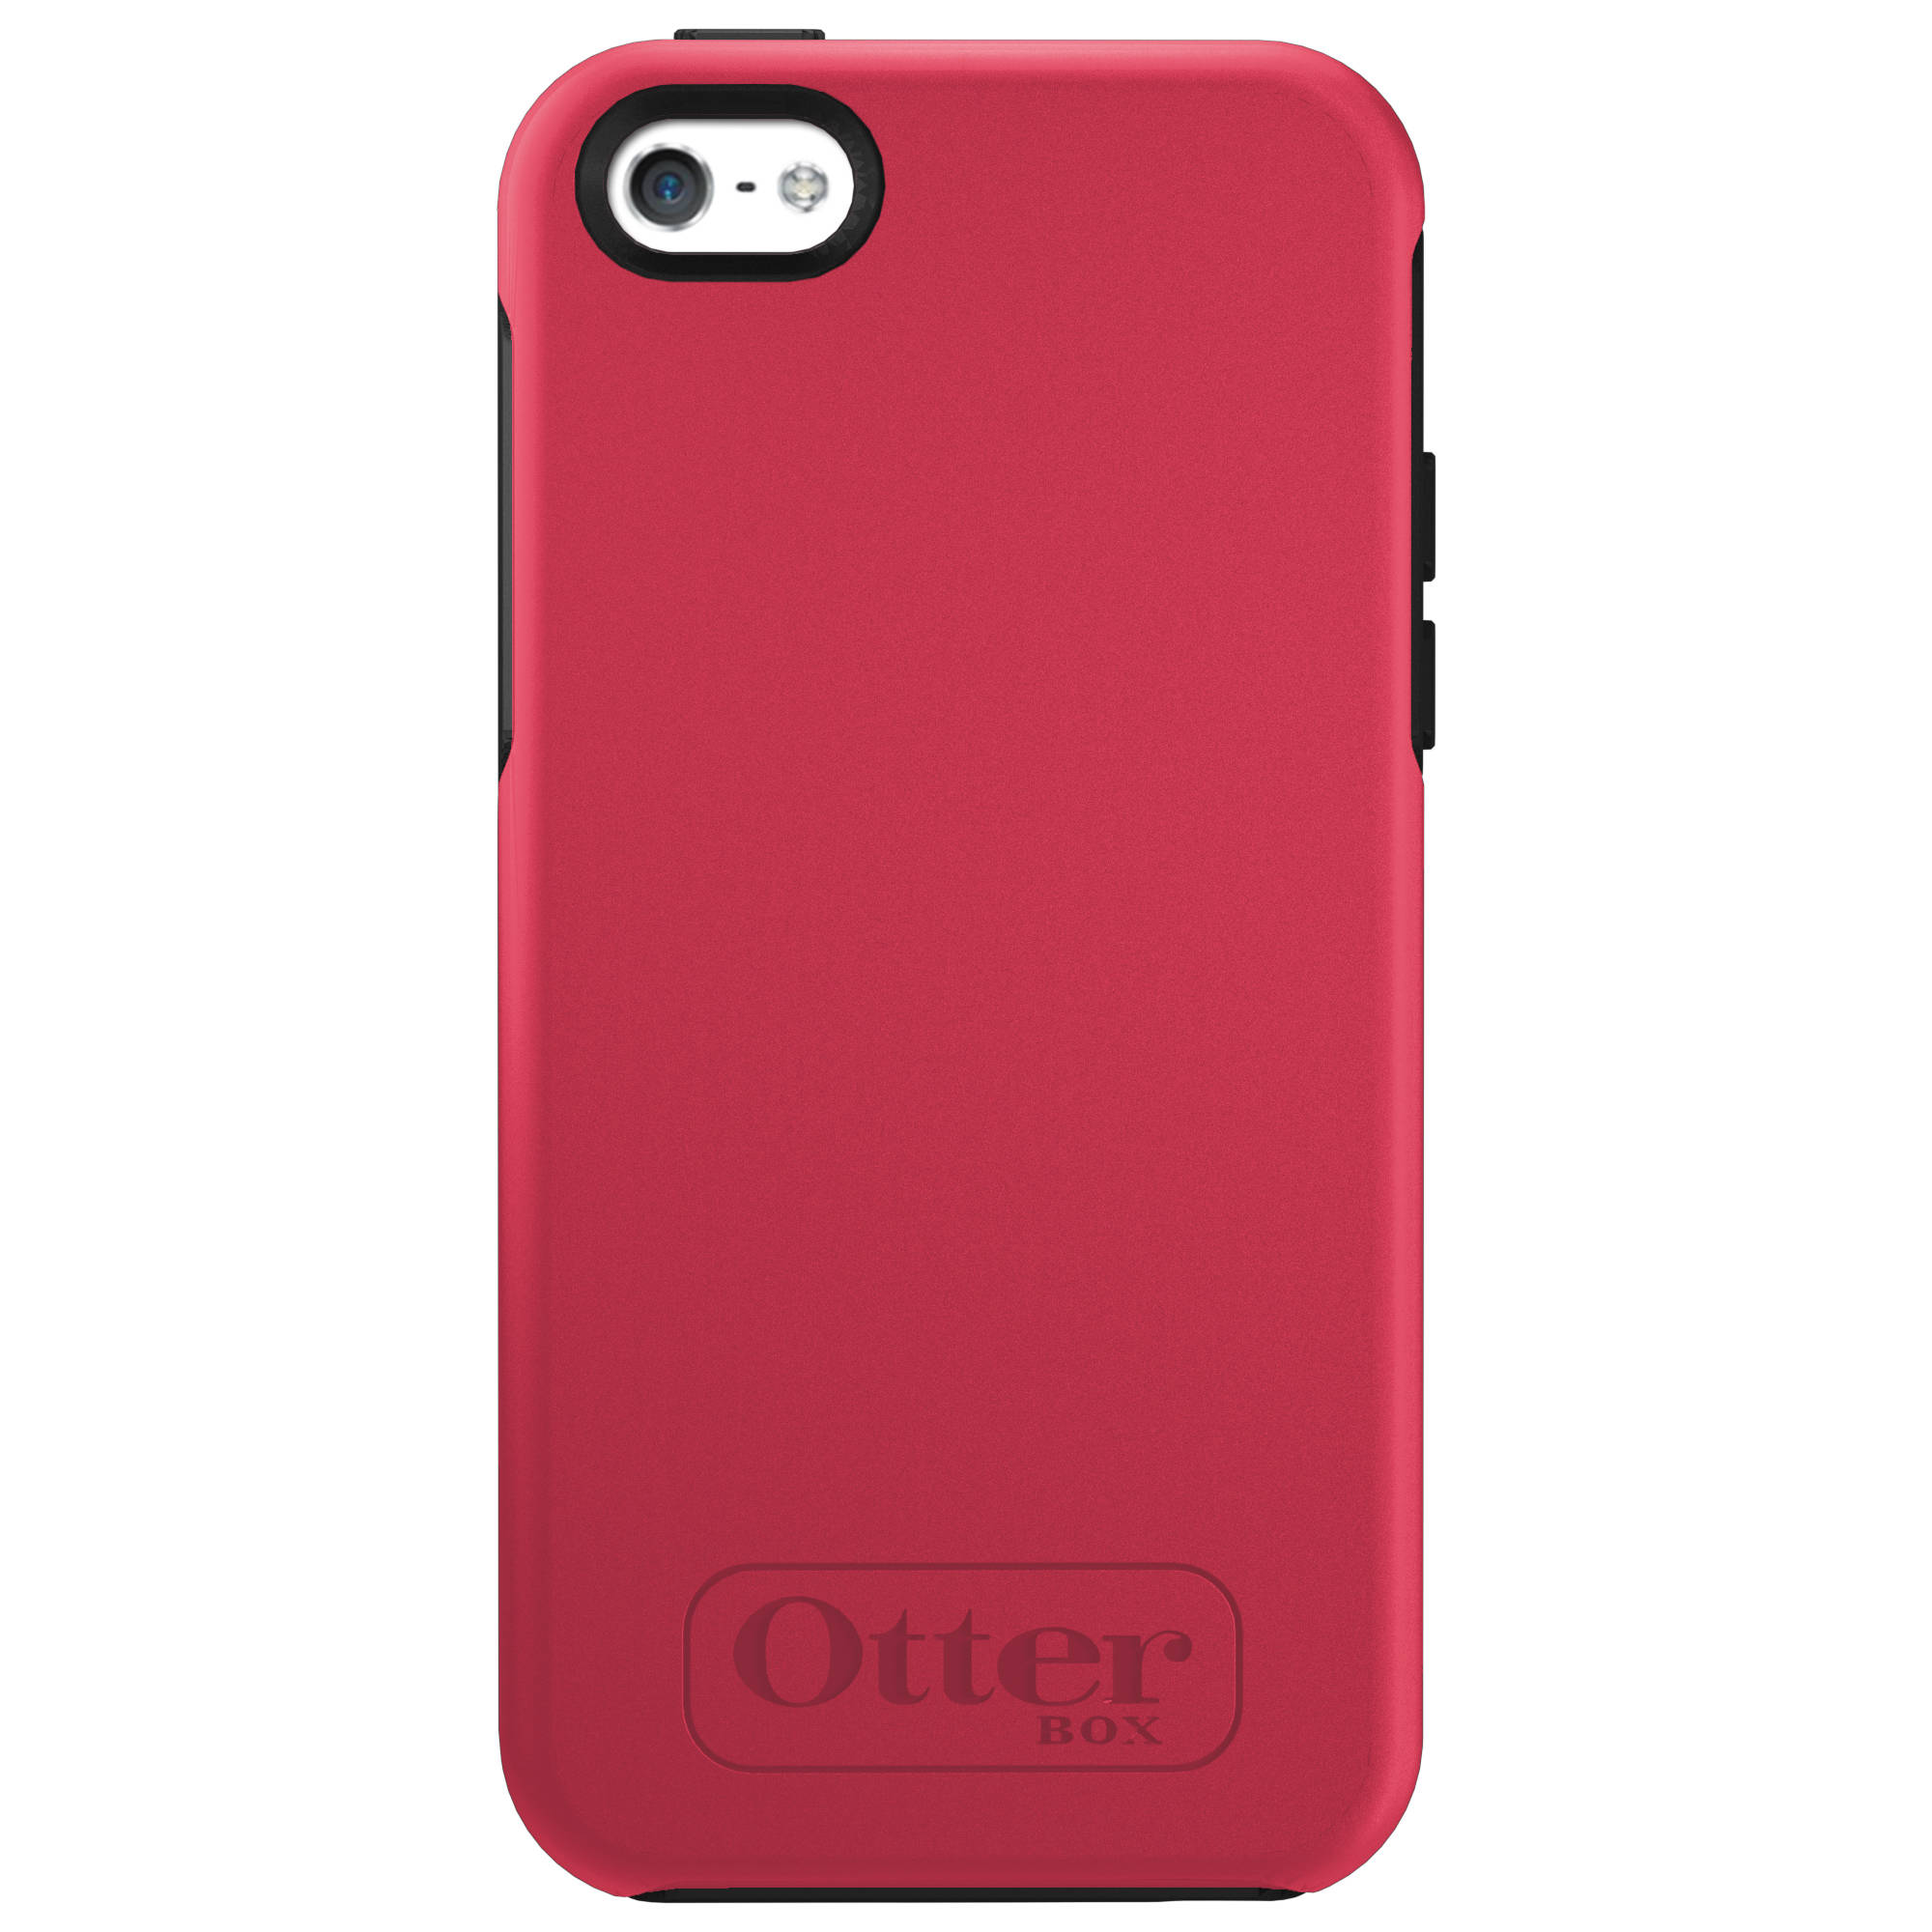 OtterBox Symmetry Series Case for iPhone 5c (Candy Pink)